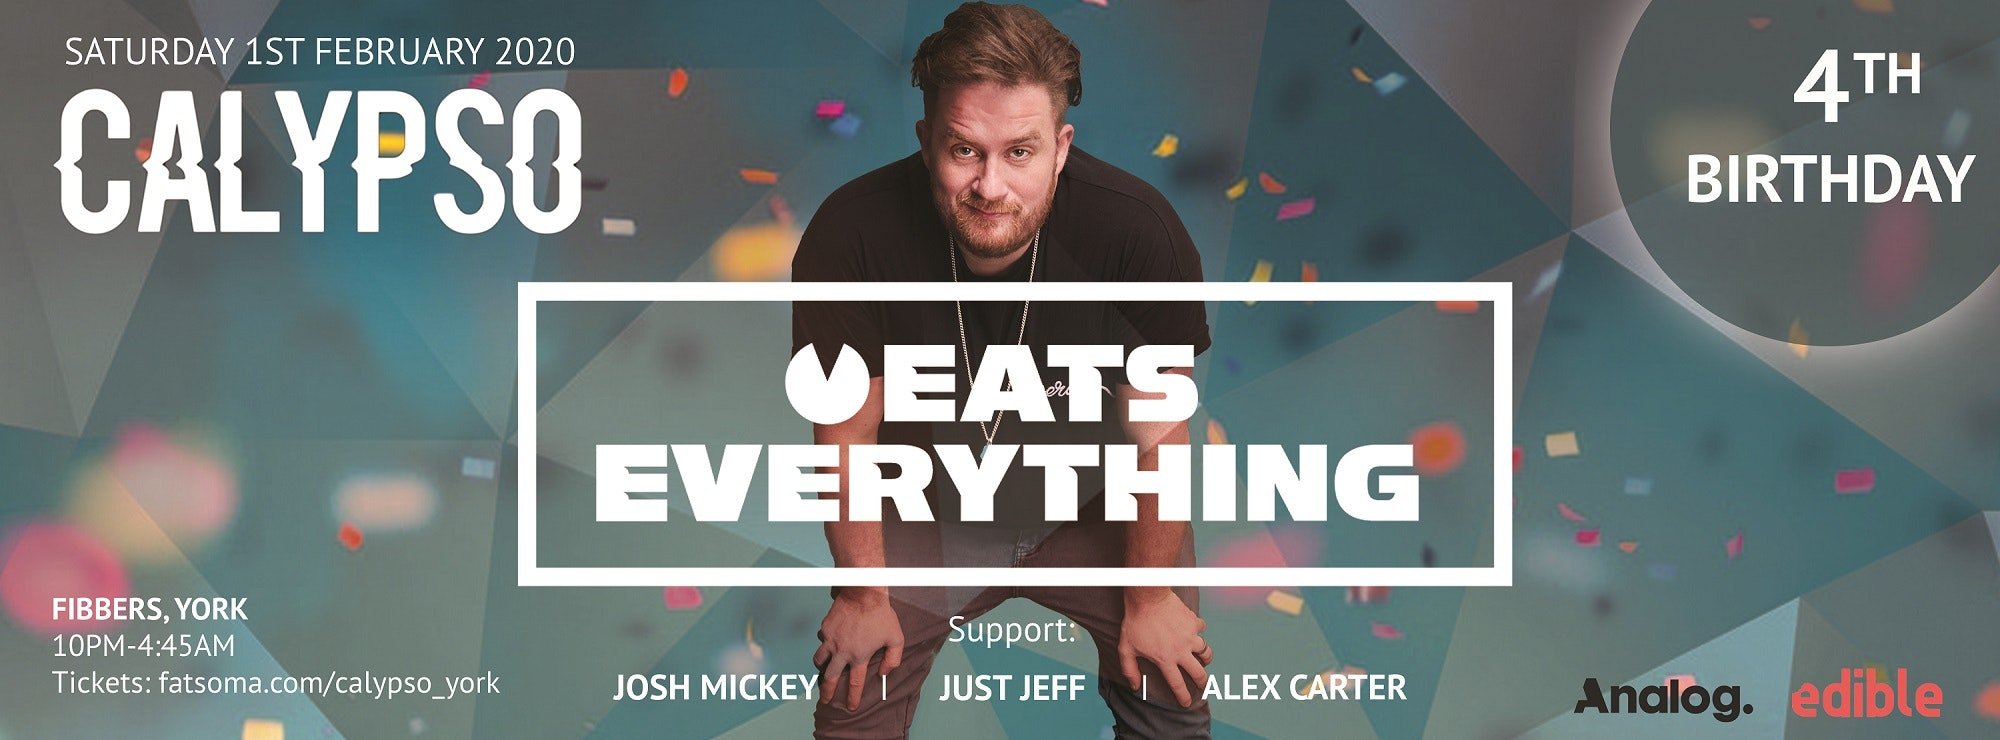 Calypso 4th Birthday: Eats Everything (Extended Set)